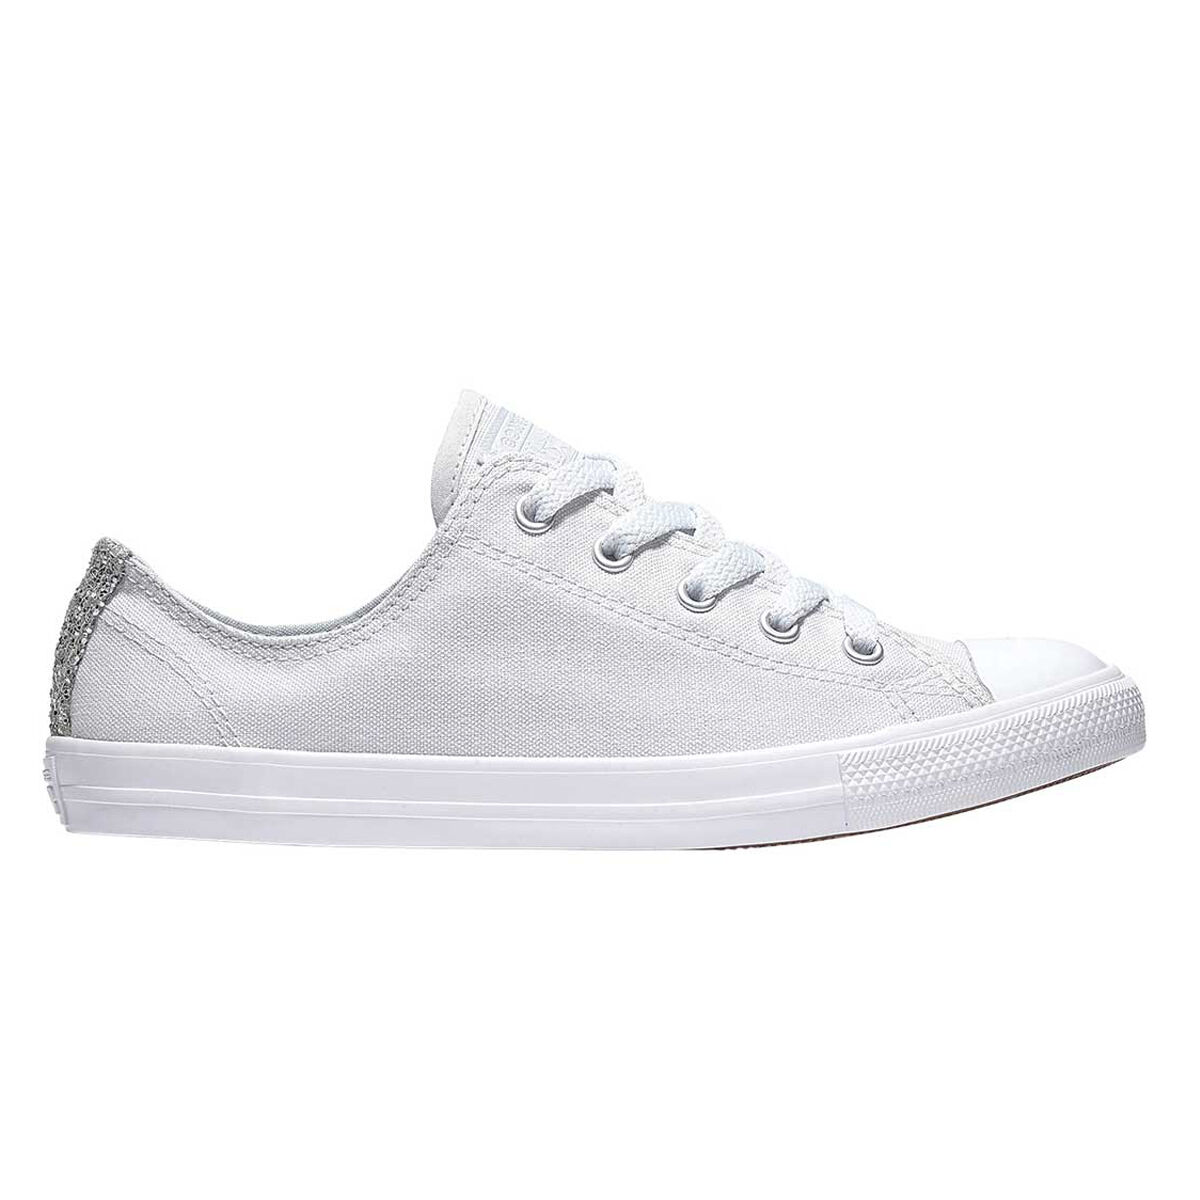 Converse Chuck Taylor All Star Dainty Womens Casual Shoes